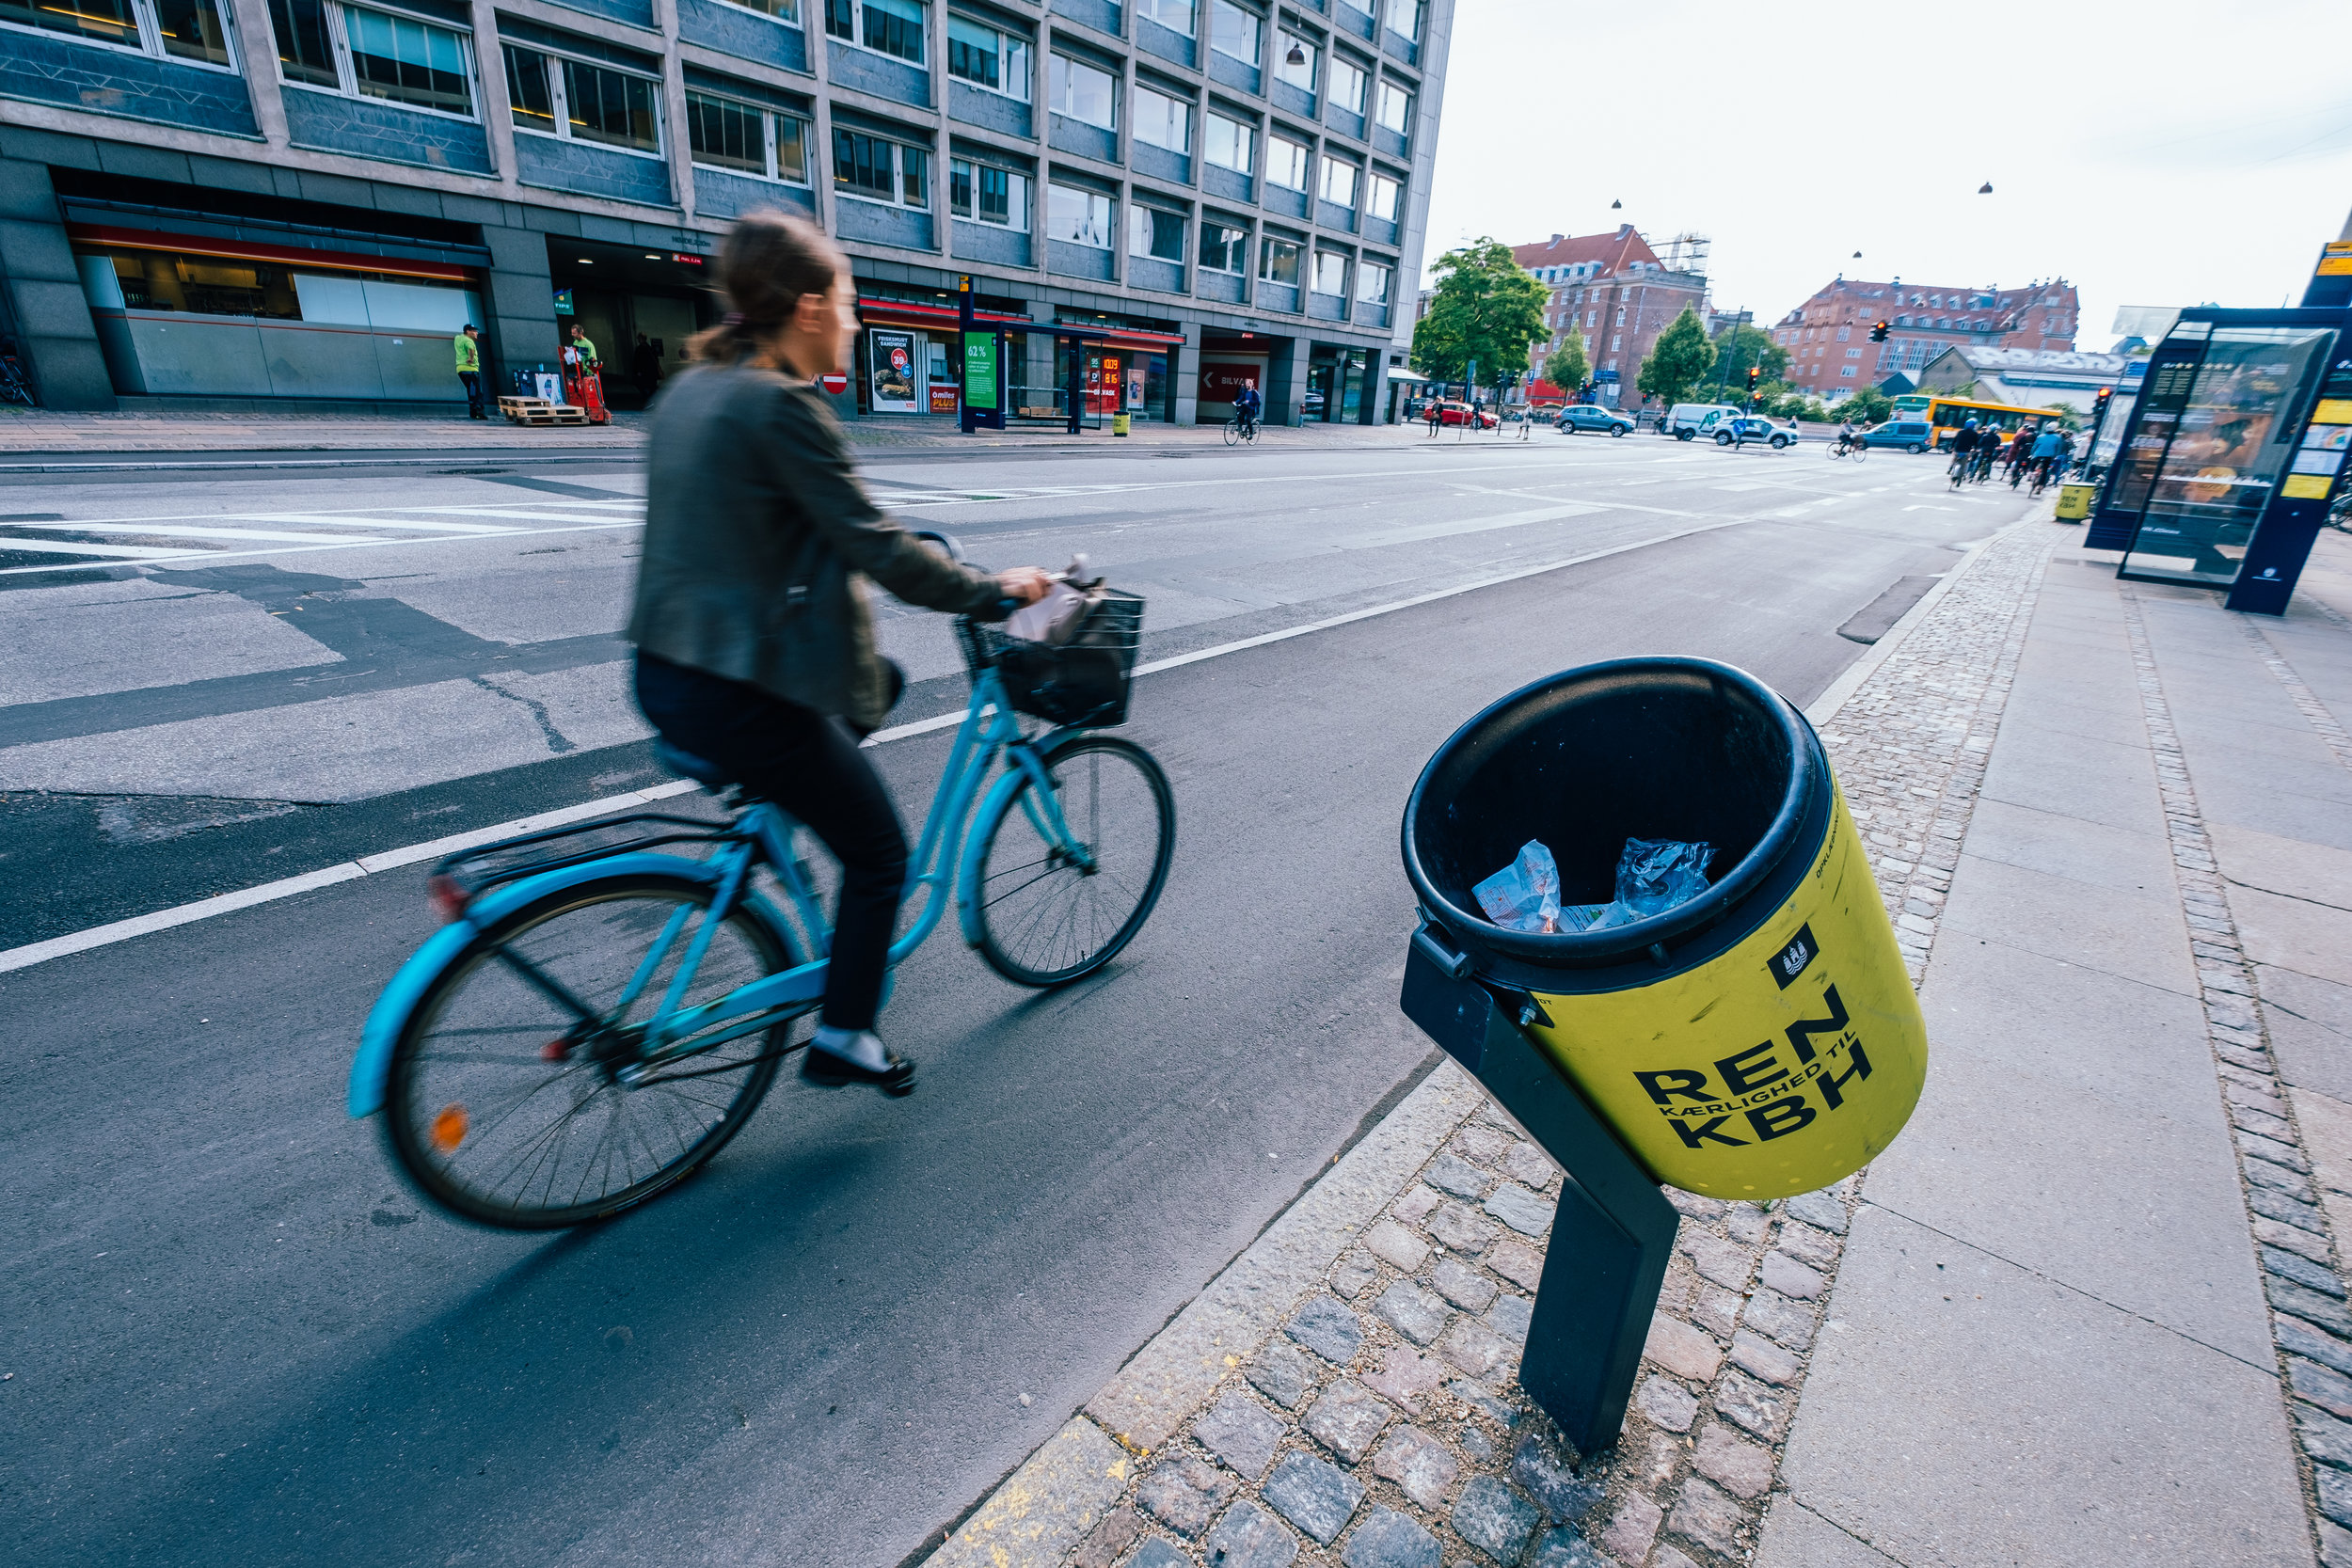 An angled trash can designed for cyclists on the go in Copenhagen, Denmark. (Steve Johnson/RWJF)